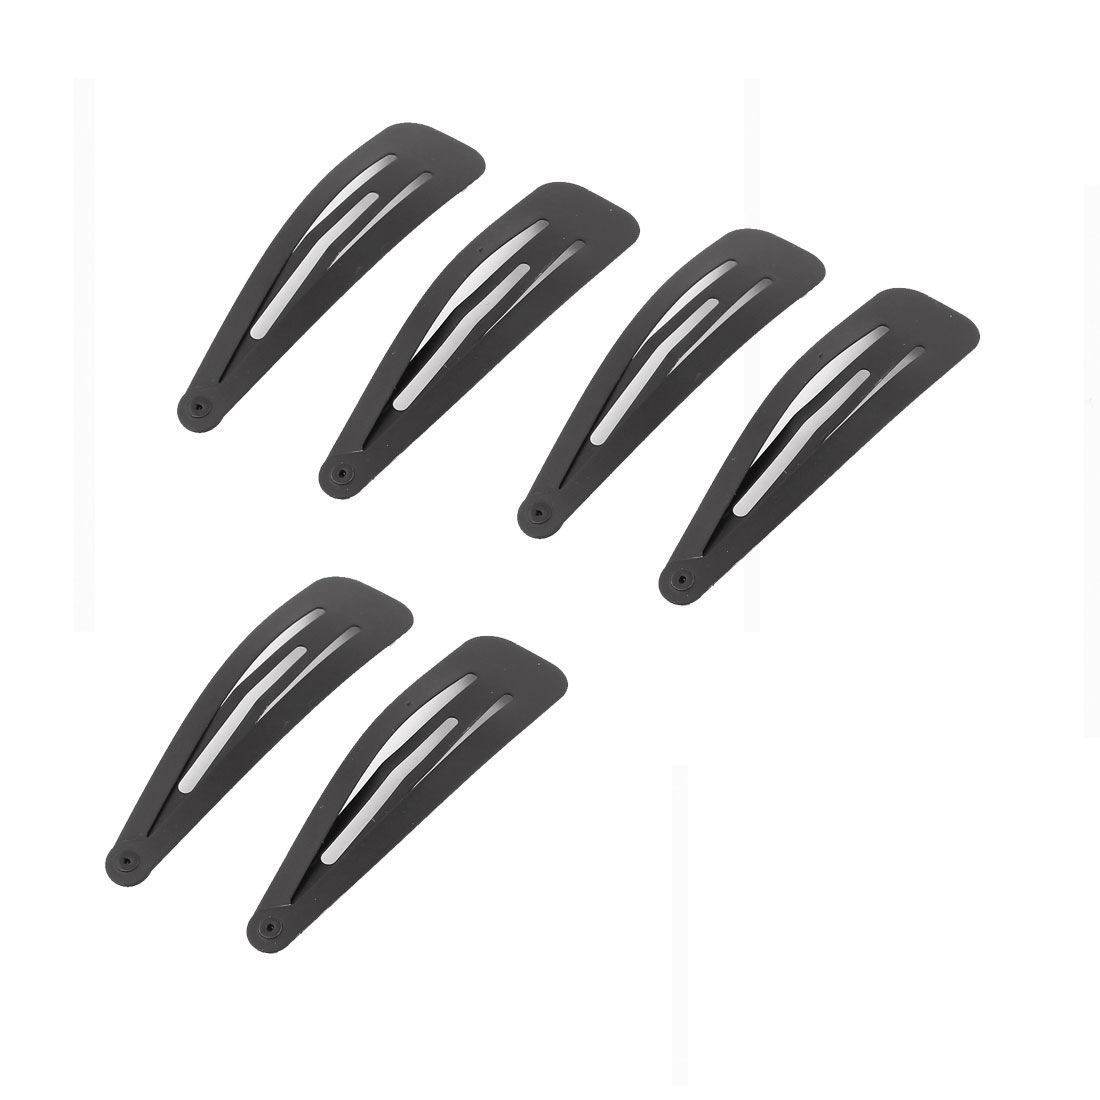 Lady Metal Bow Prong Barrettes Bendy Snap Hairstyle DIY Hair Clips Black 6 Pcs